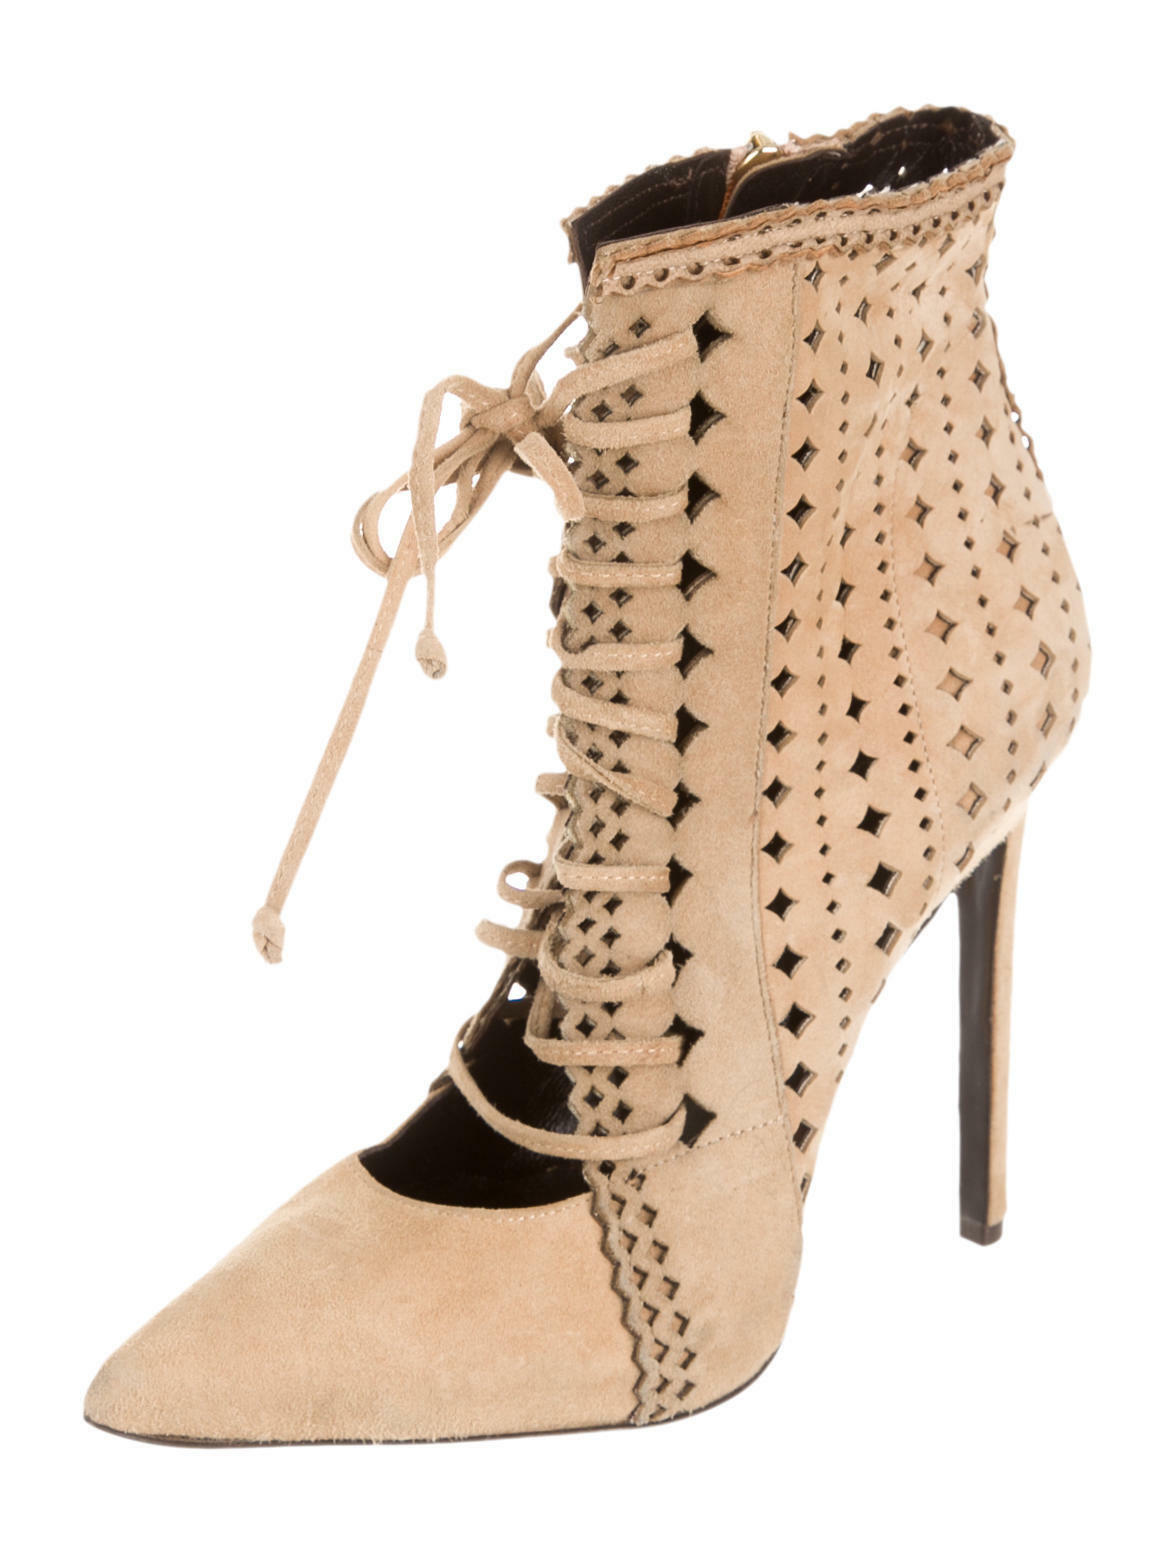 SPECTACULAR, SOLD OUT, NEW  2,300 ROBERTO CAVALLI LASER CUT SUEDE ANKLE BOOTS